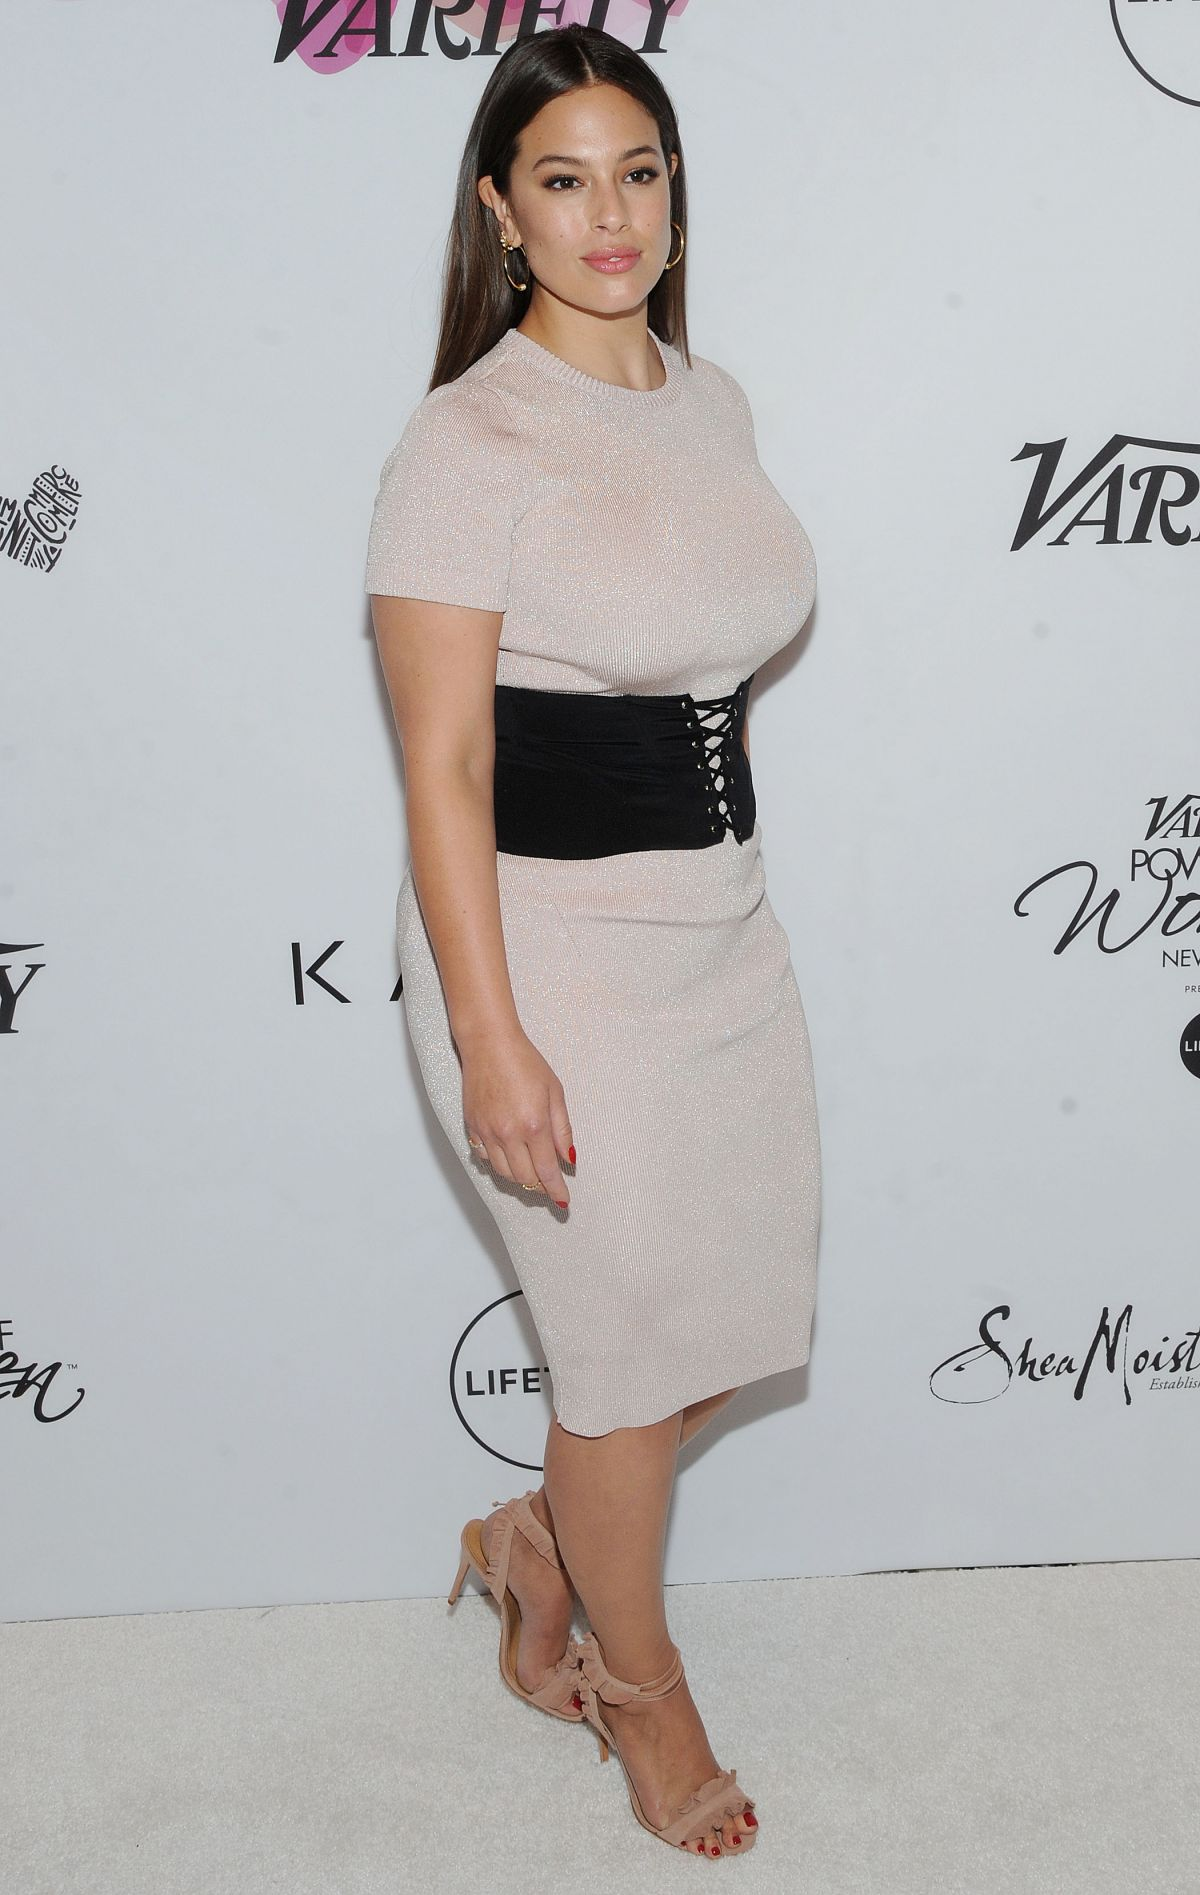 ASHLEY GRAHAM at Variety's Power of Womae NY Presented by Lifetime in Ciprani Midtown in New York. 04/21/2017